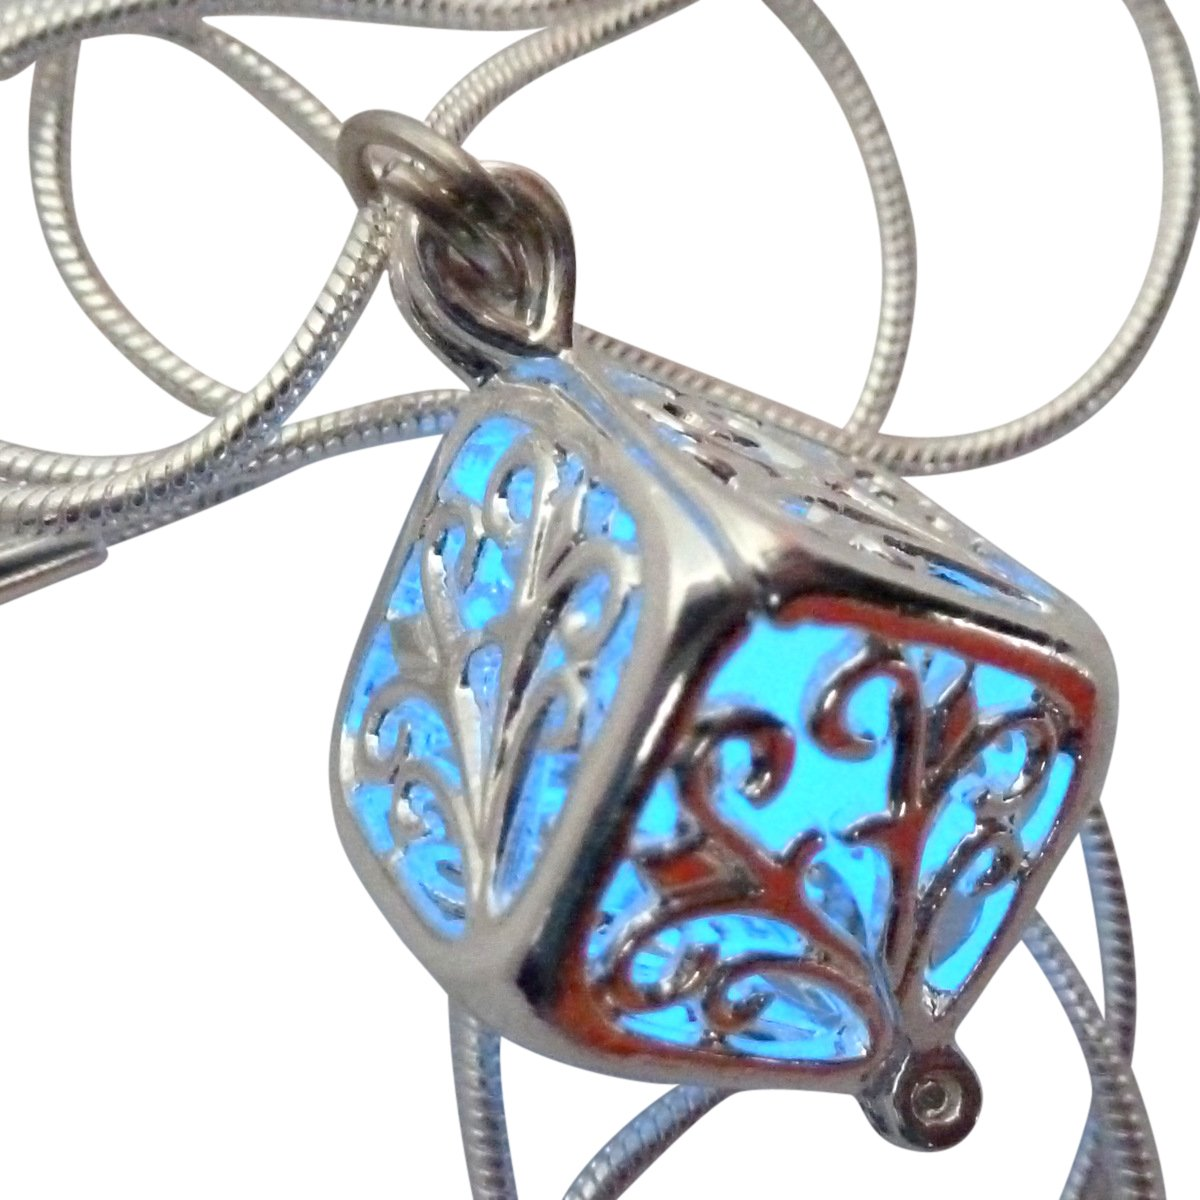 UMBRELLALABORATORY Wishing Square box Magical Fairy Glow in the Dark Necklace-blue-sil